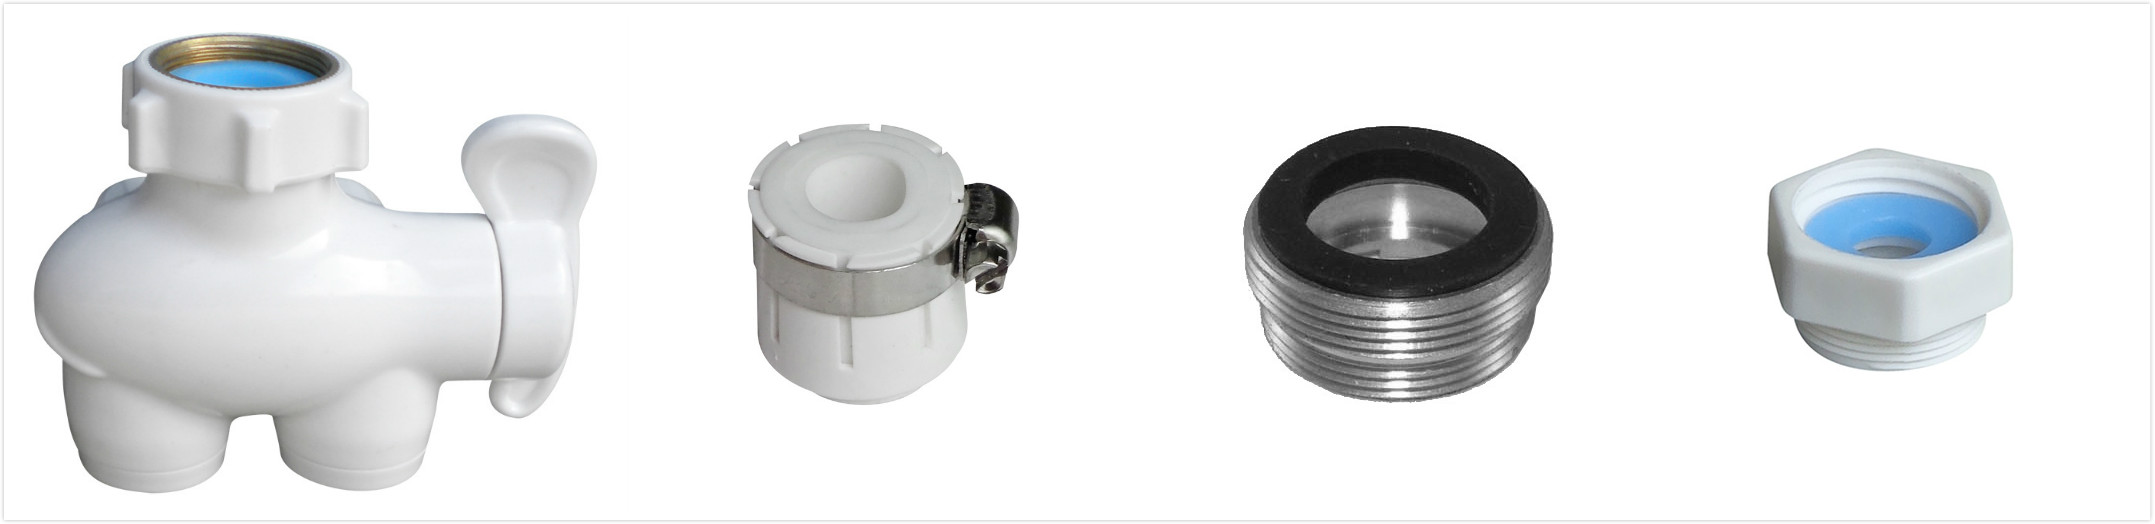 Water purifier faucet Double switch parts